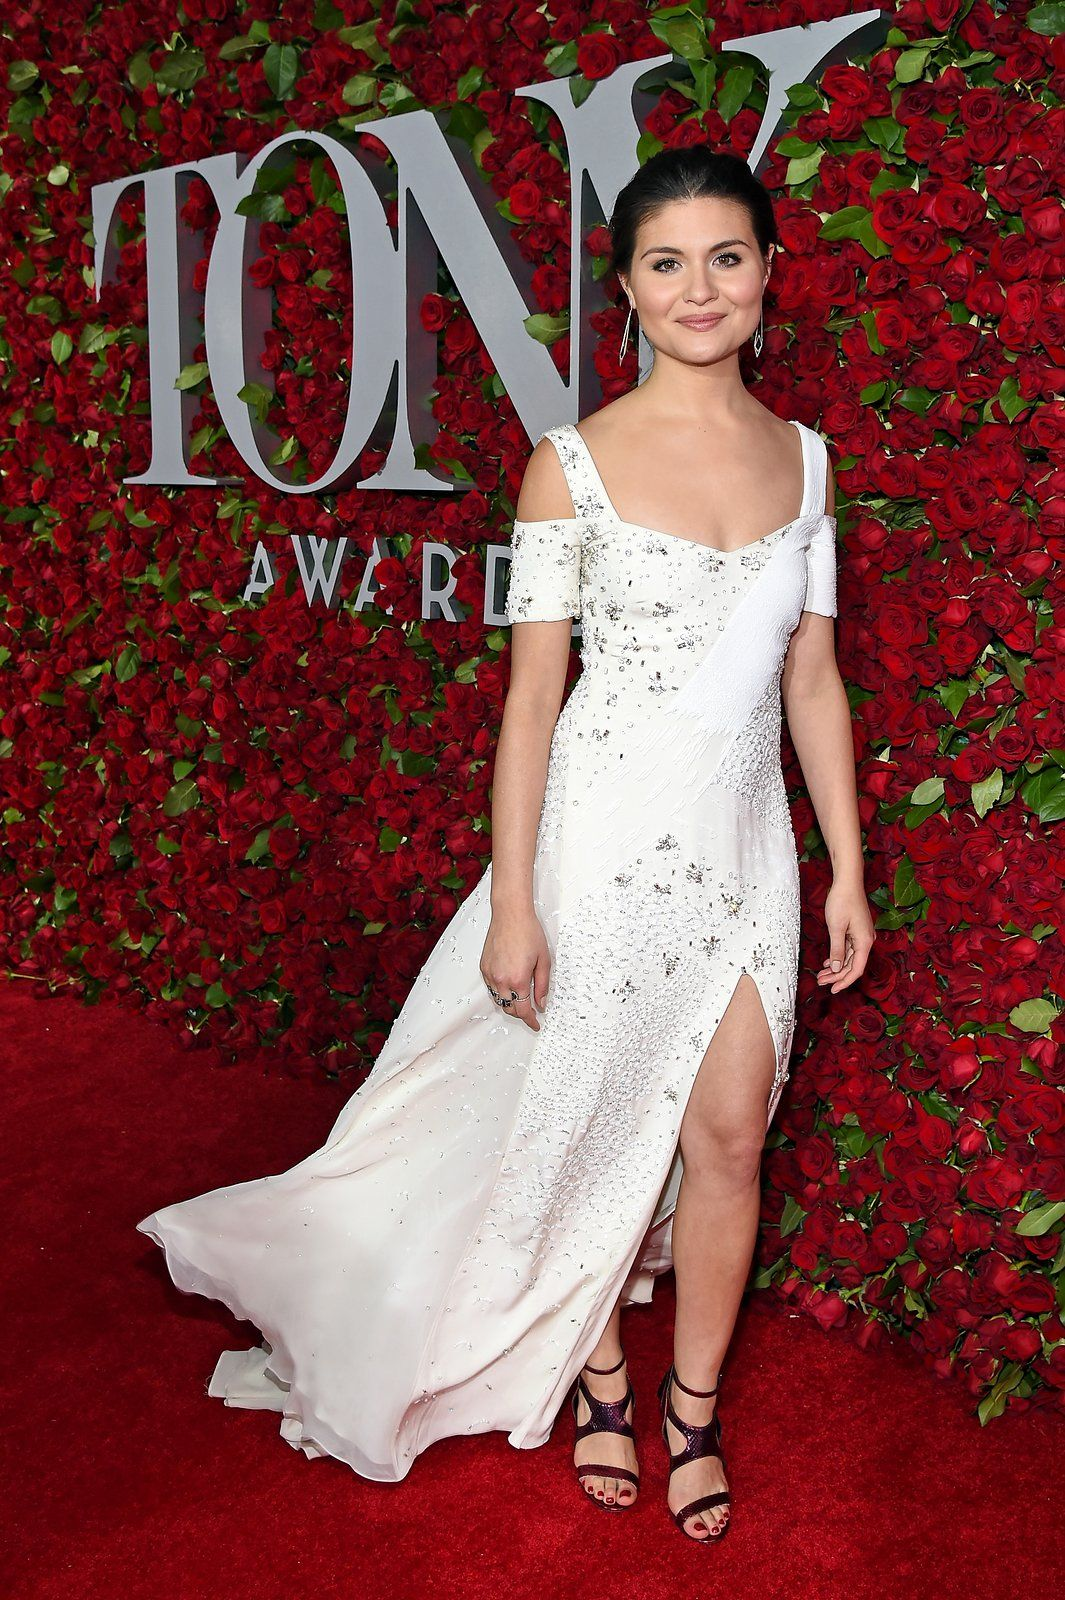 Tony awards fashionulive from the red carpet prabal gurung